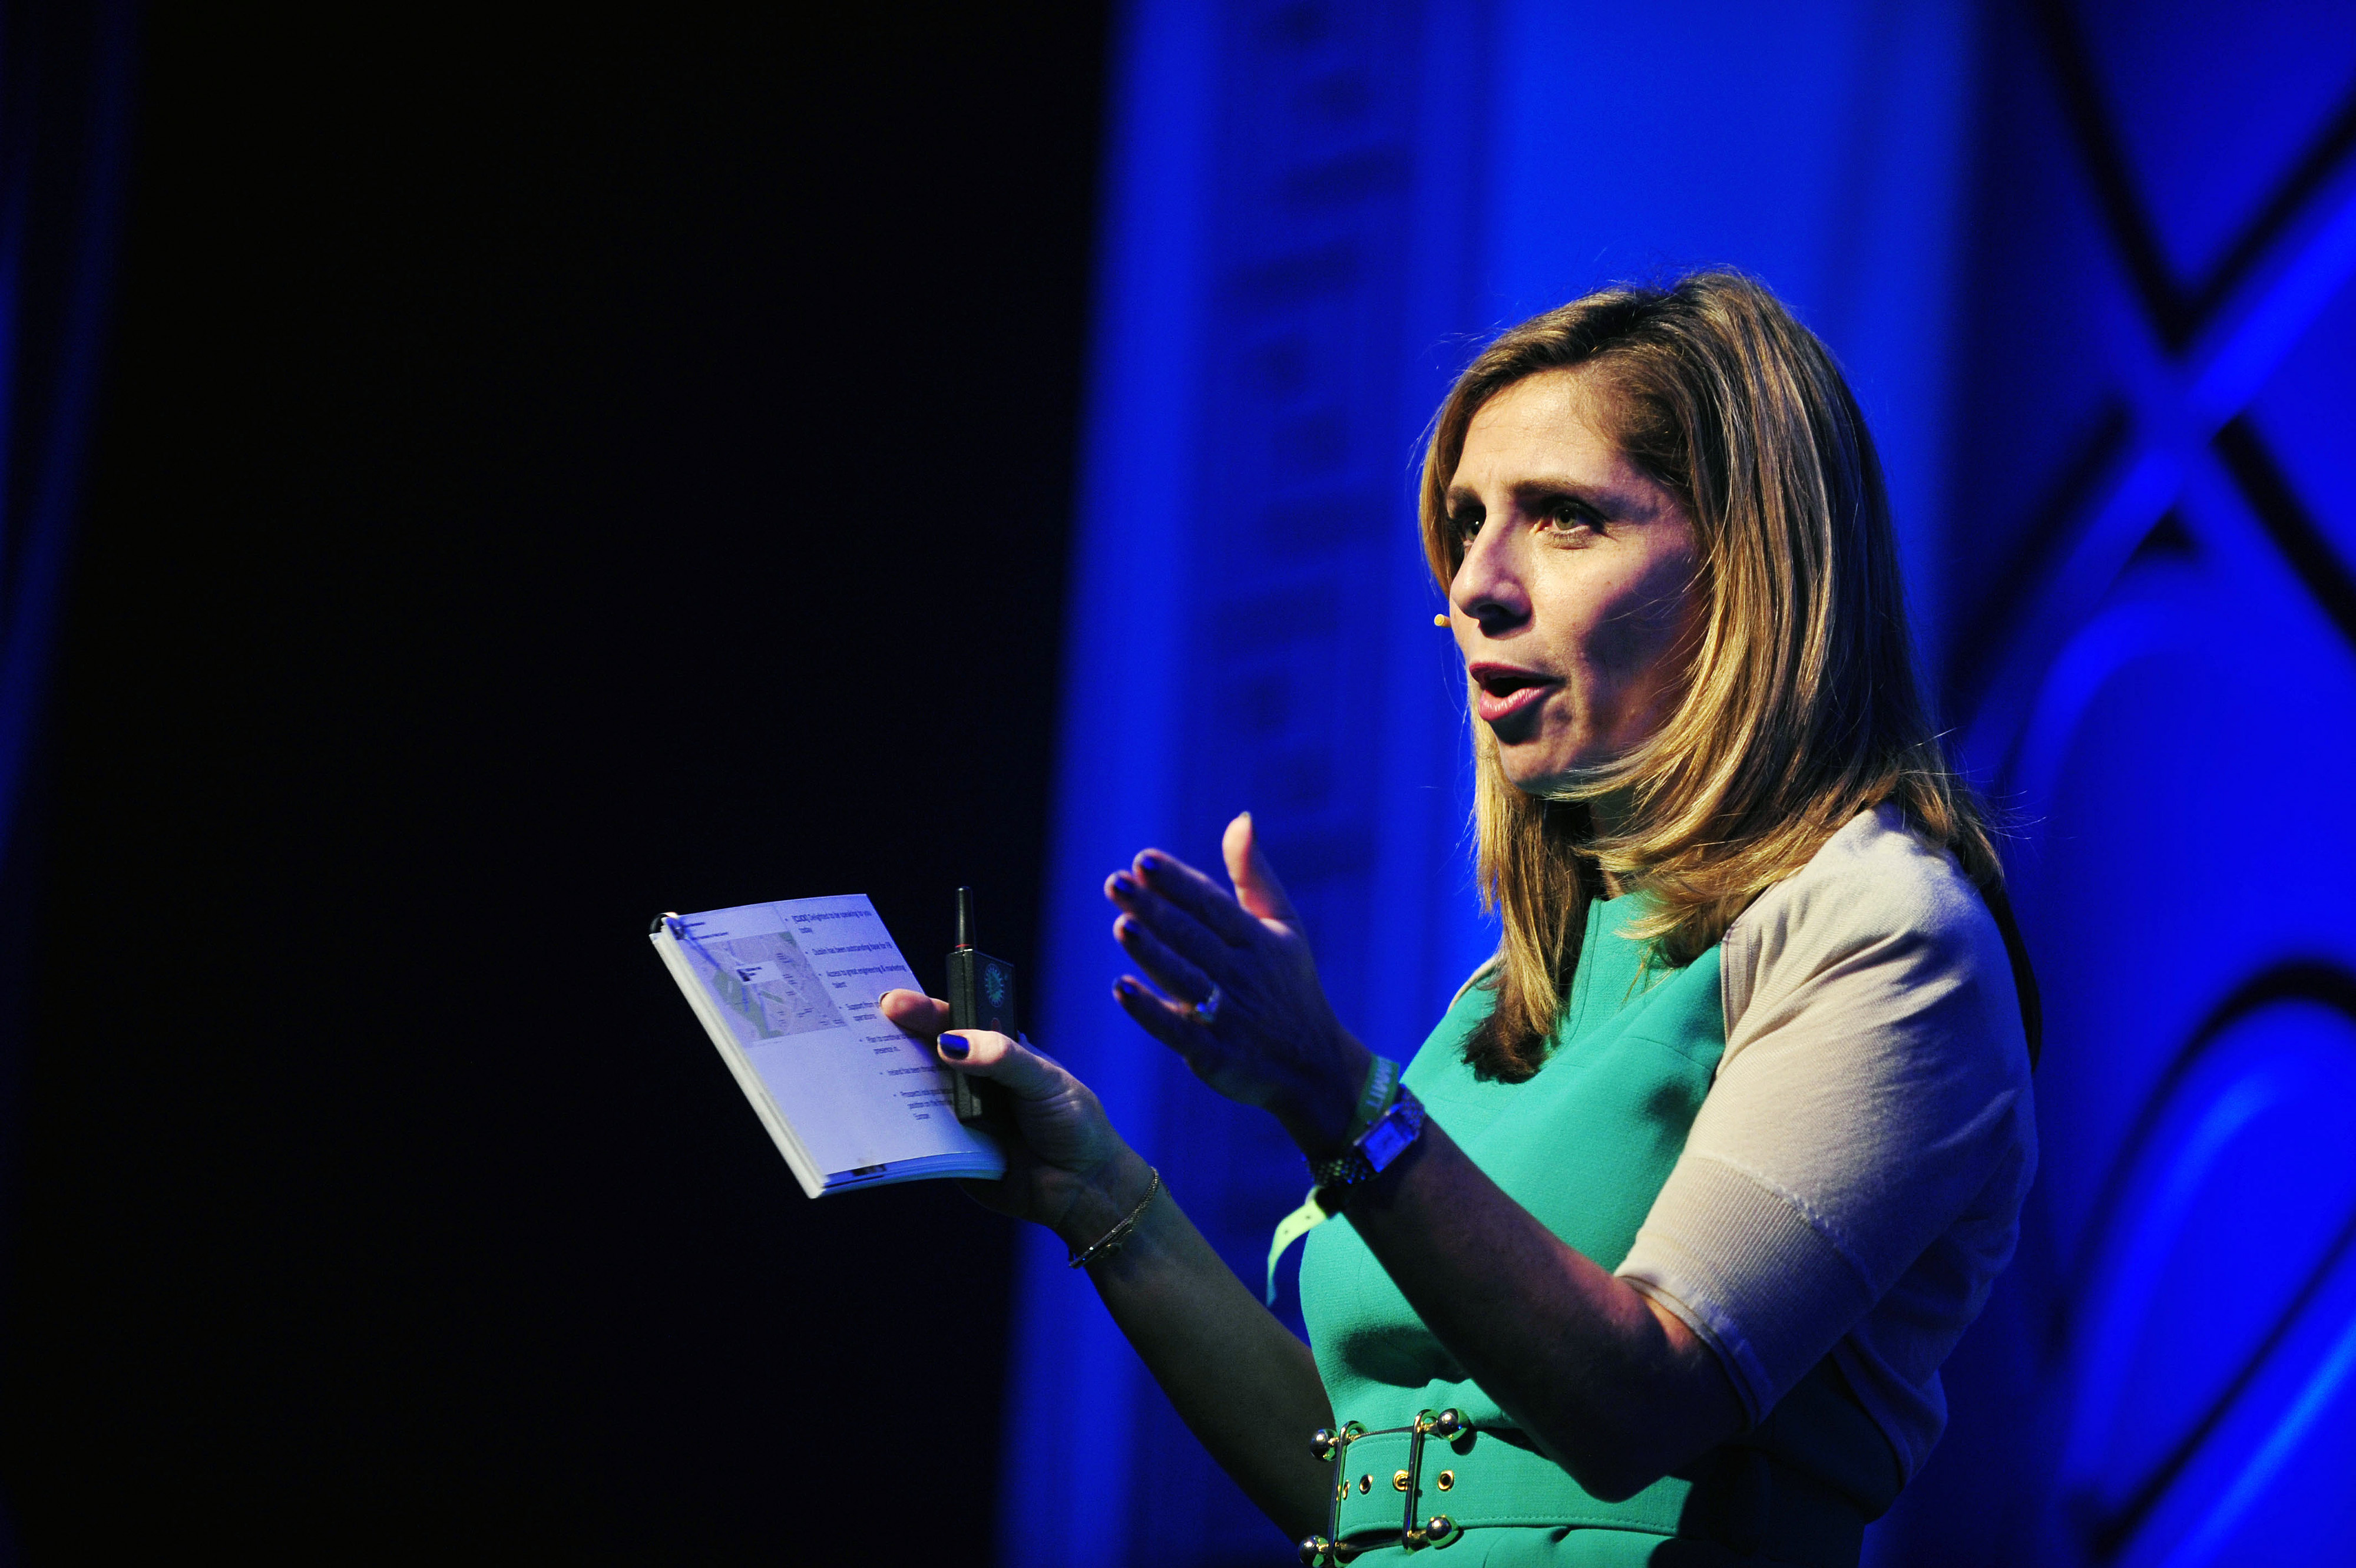 Nicola Mendelsohn, vice president for EMEA at Facebook Inc., gestures as she addresses delegates during the Dublin Web Summit in Dublin on Oct. 30, 2013.